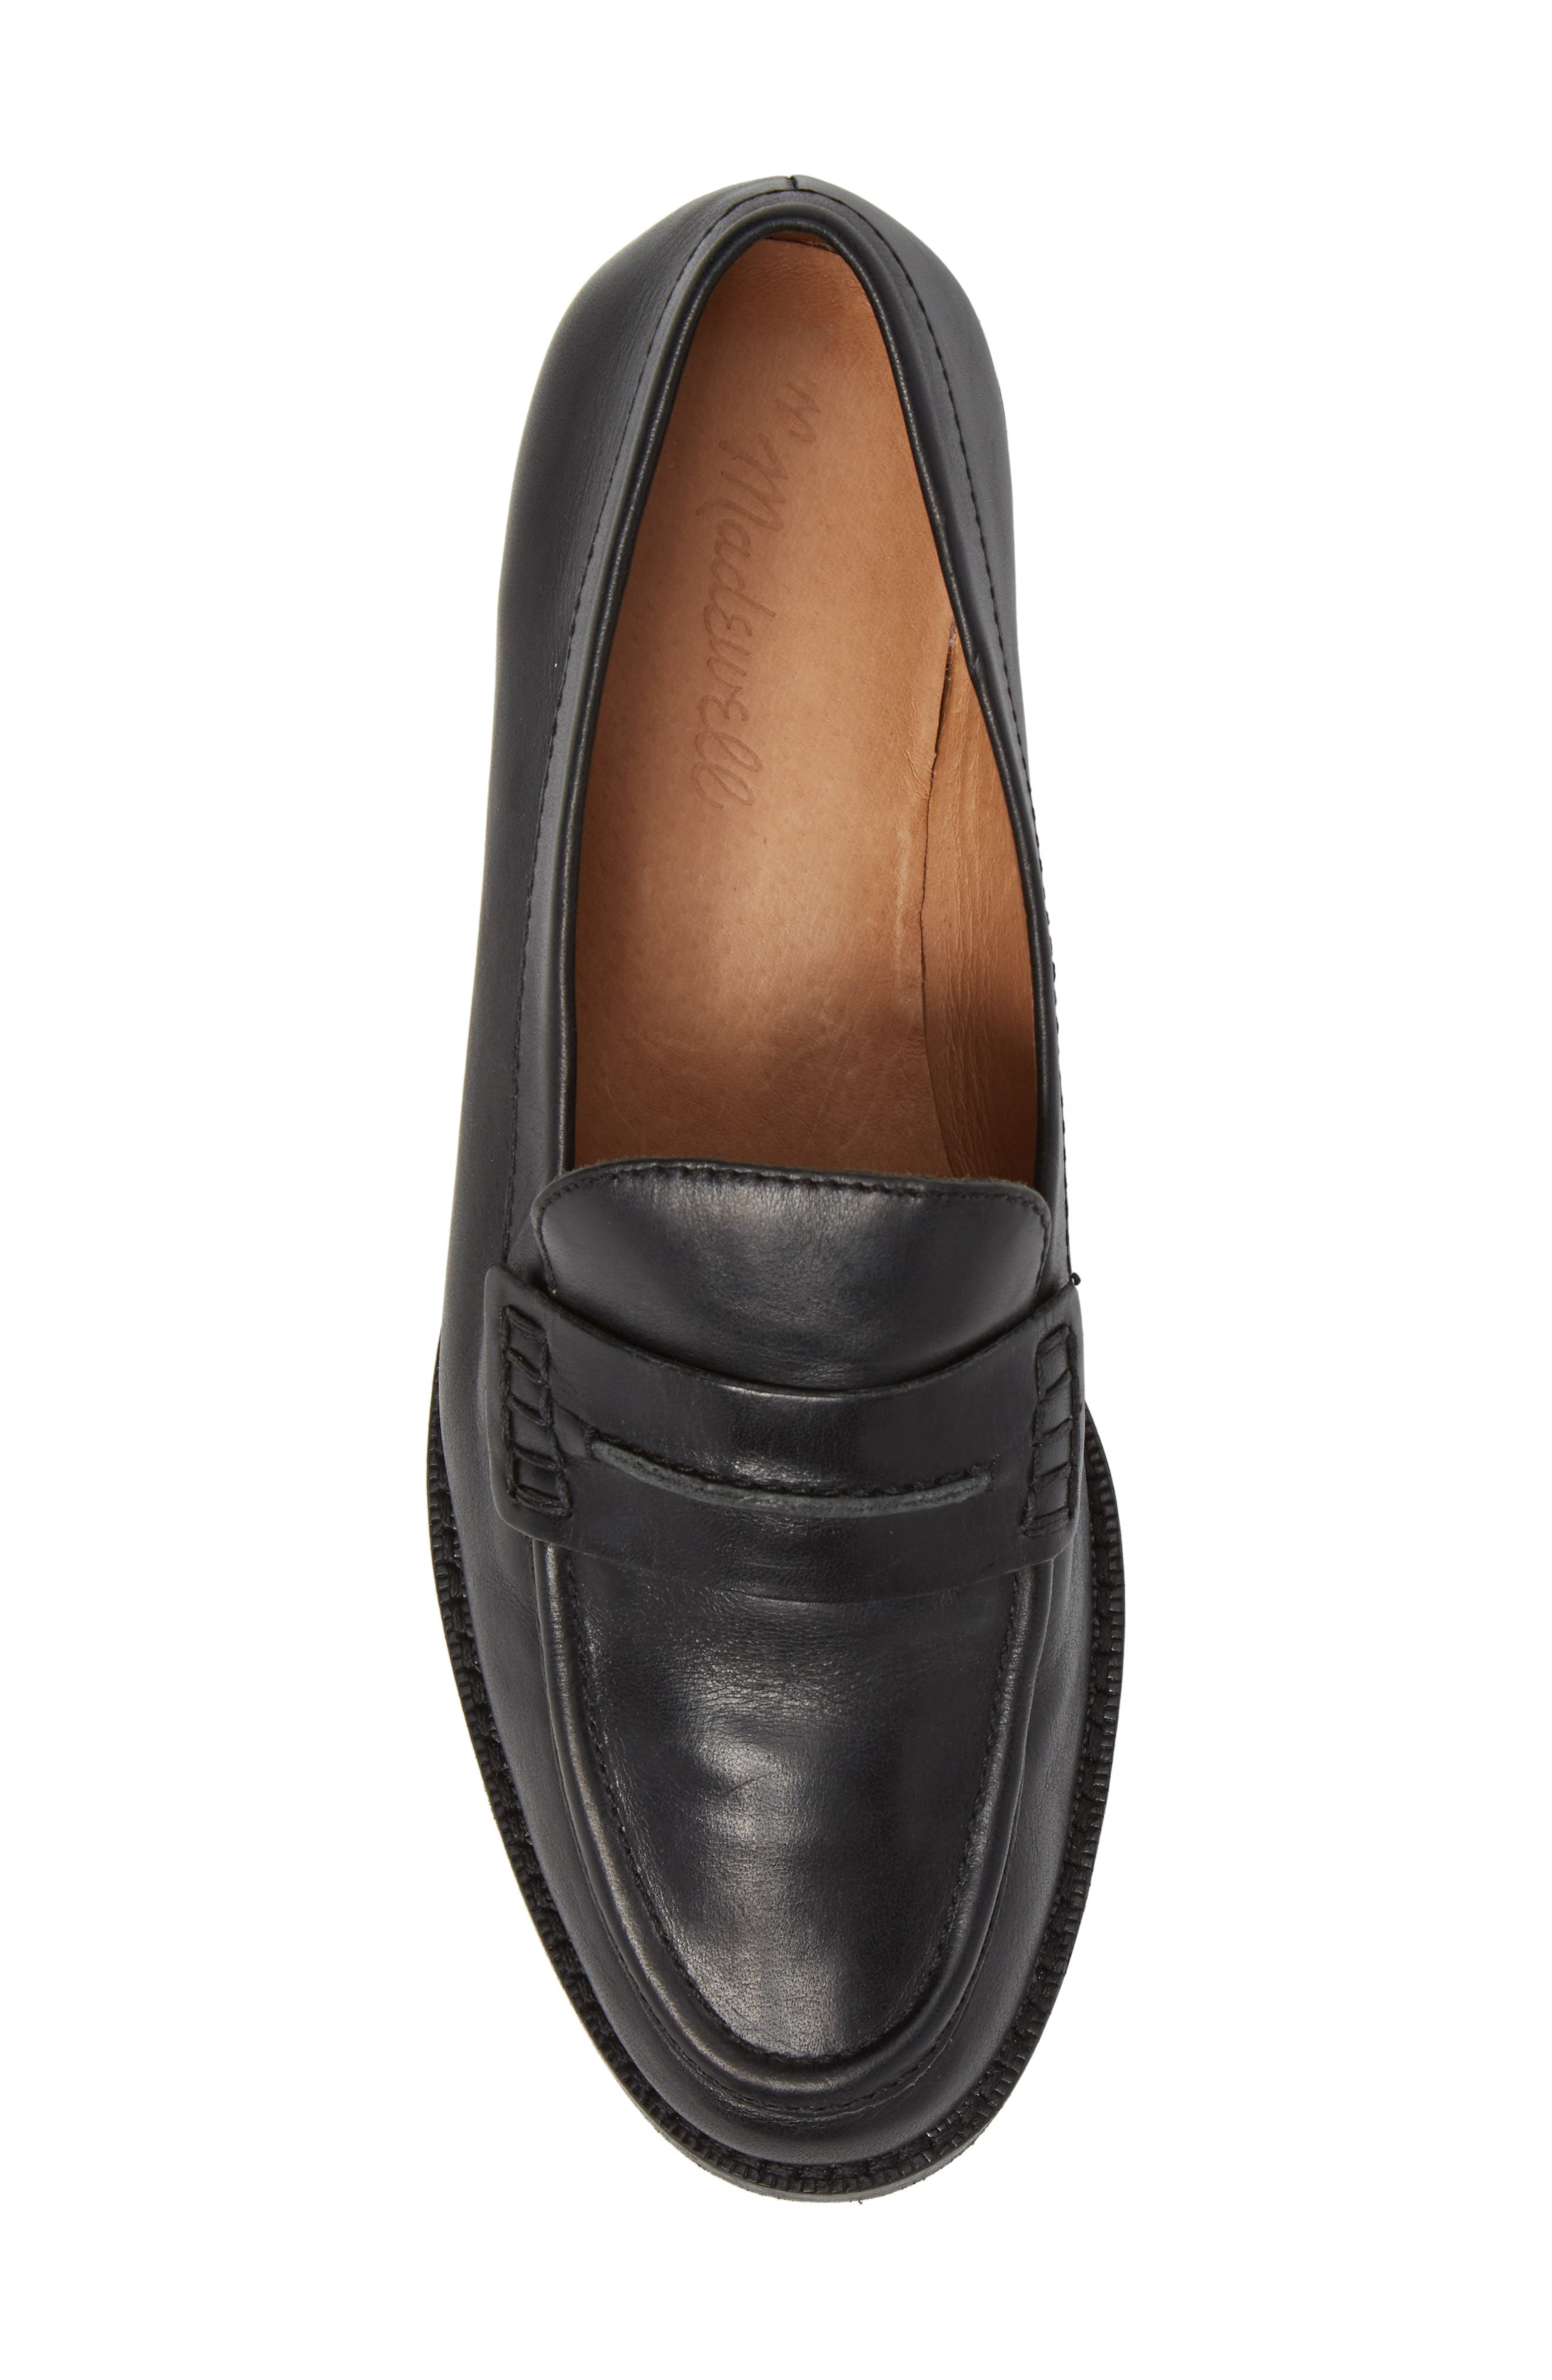 MADEWELL, The Elinor Loafer, Alternate thumbnail 5, color, 001